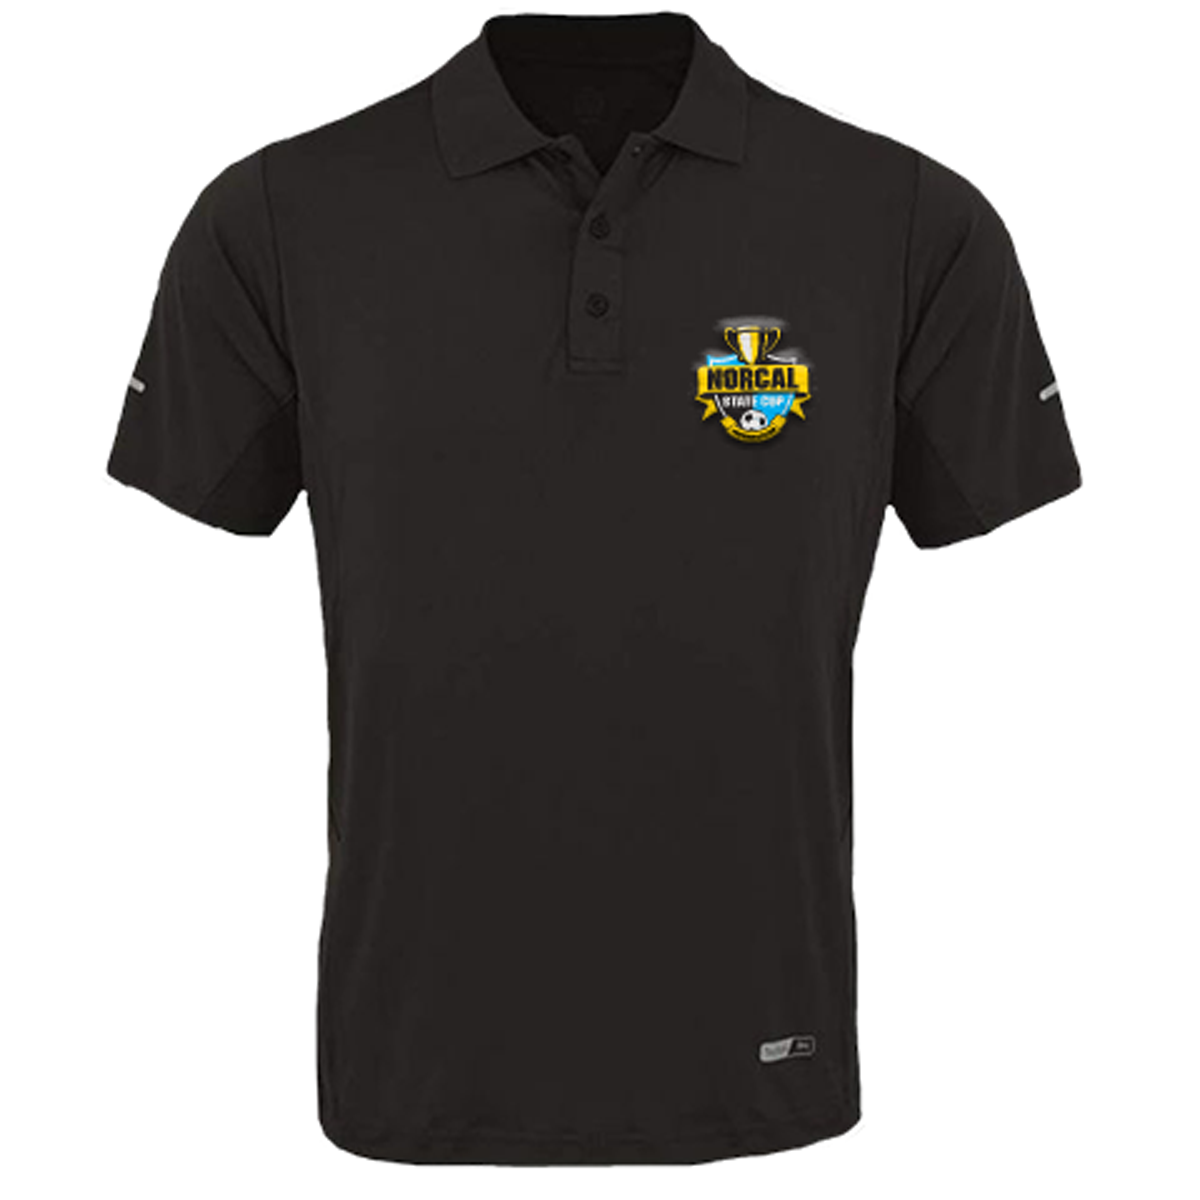 Embroidered Admiral Pro Stretch Polo-XL